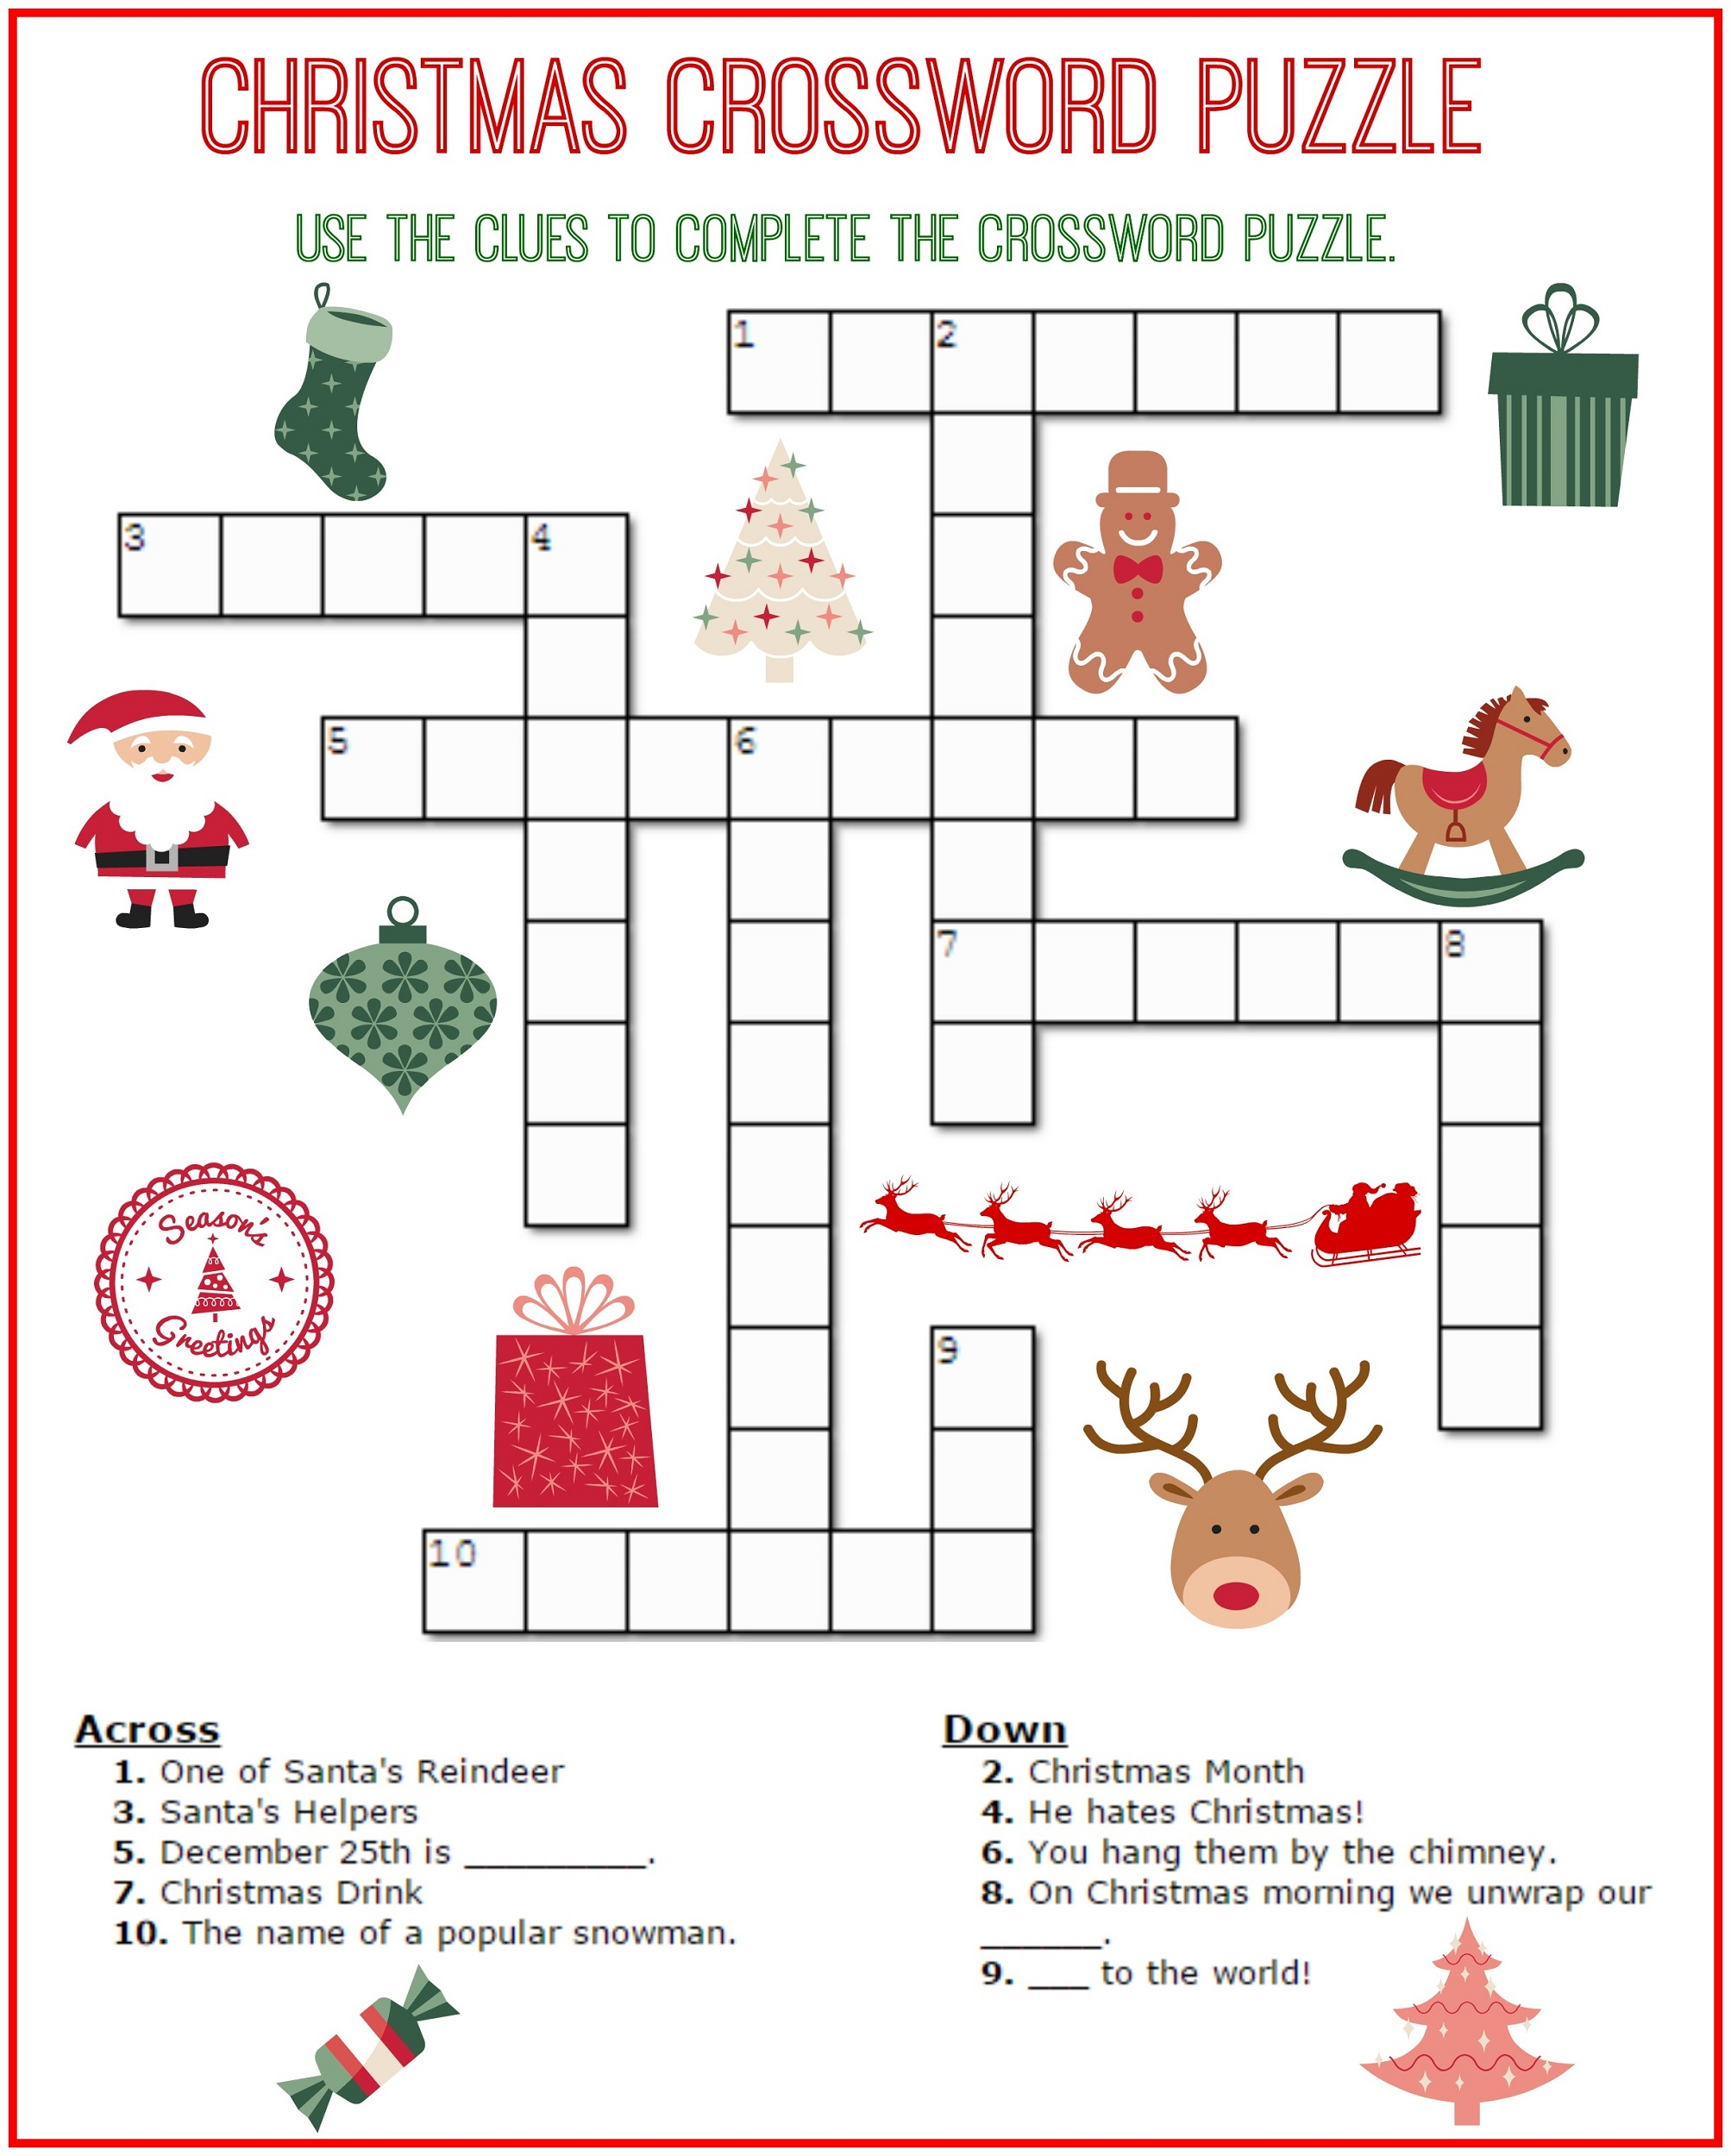 Crossword Puzzle Kids Printable 2017 | Kiddo Shelter - Printable Crossword Puzzles About Animals